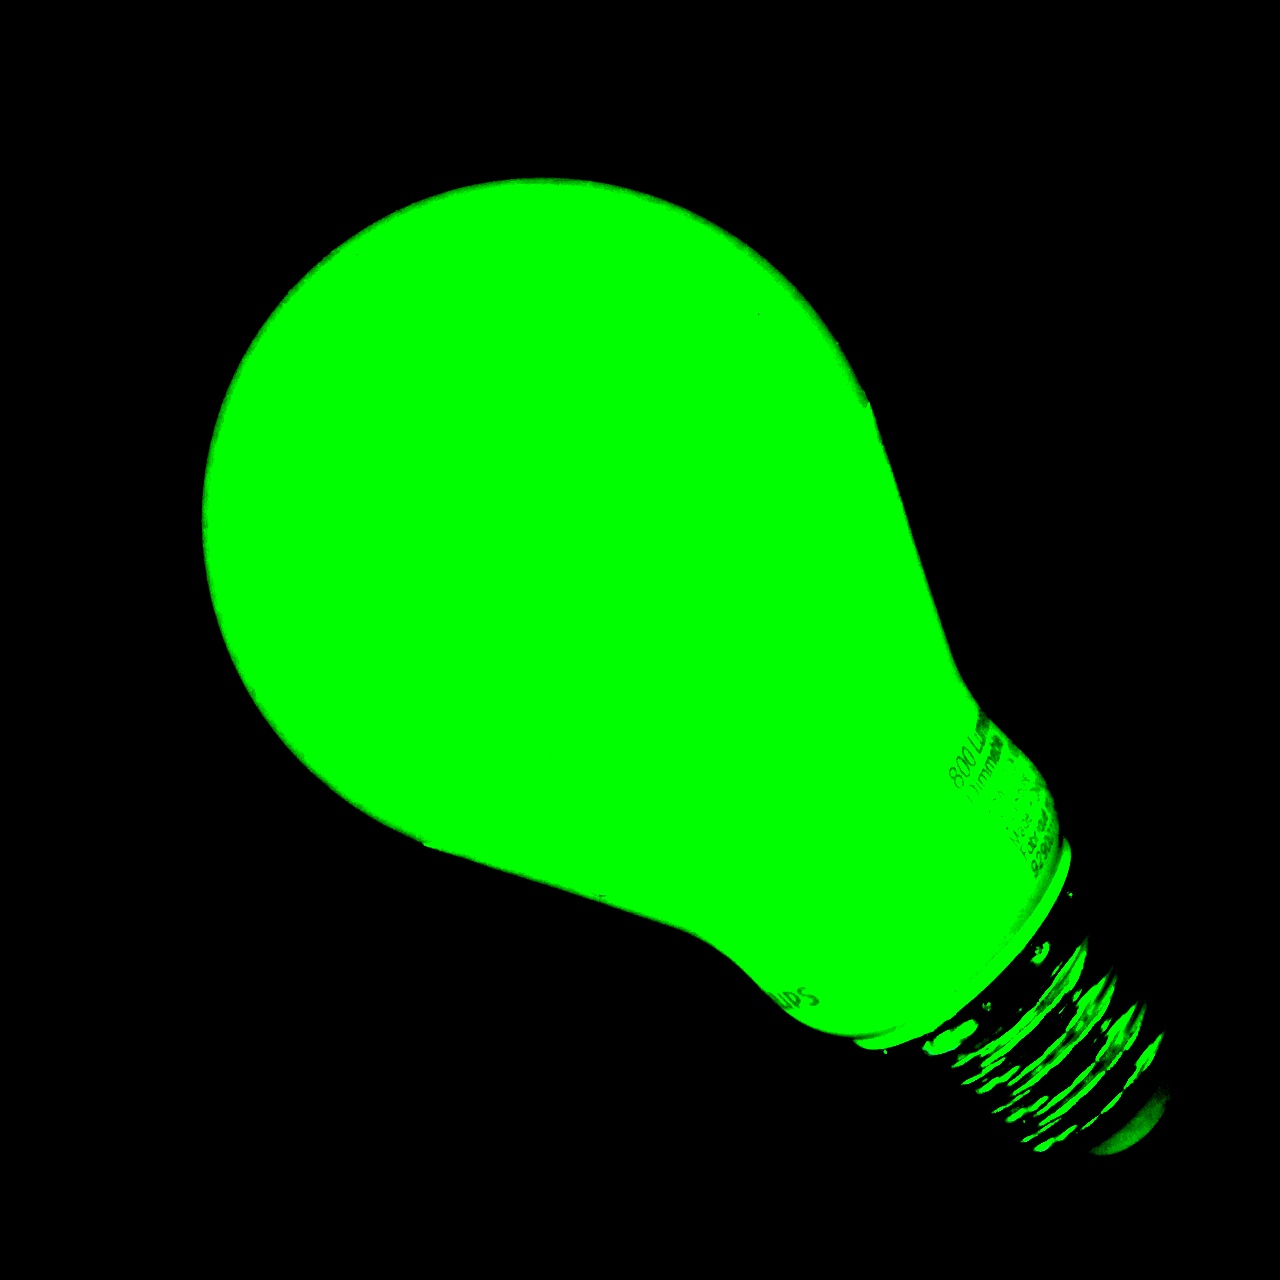 Photo of a green, glowing LED light bulb.